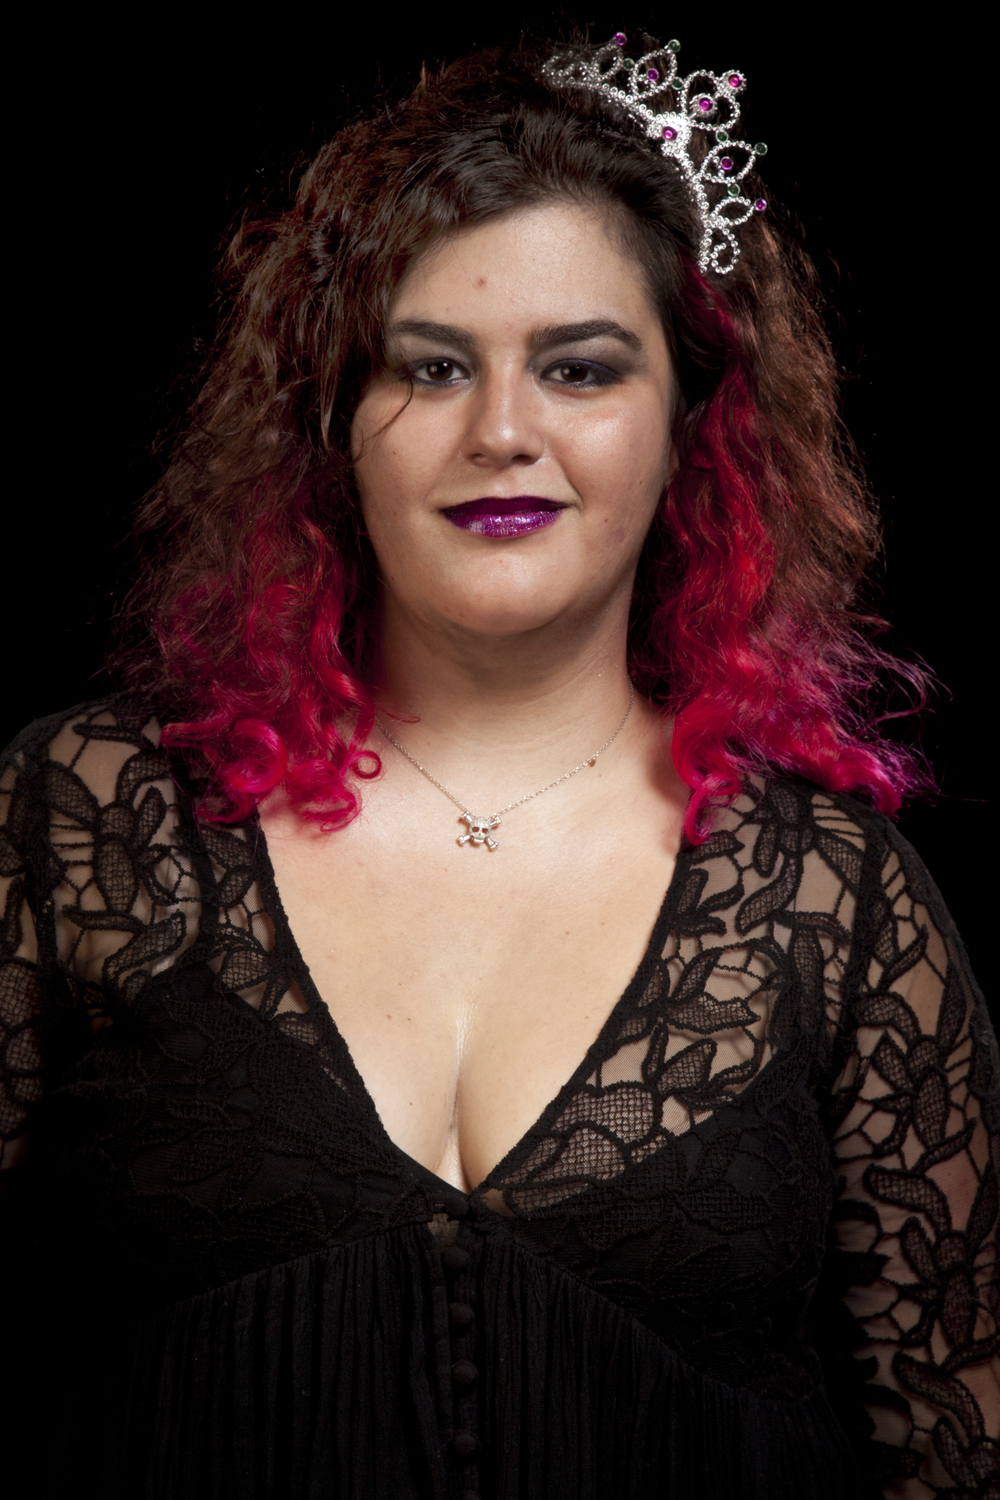 red hair, black lace topIMG_4300.jpg